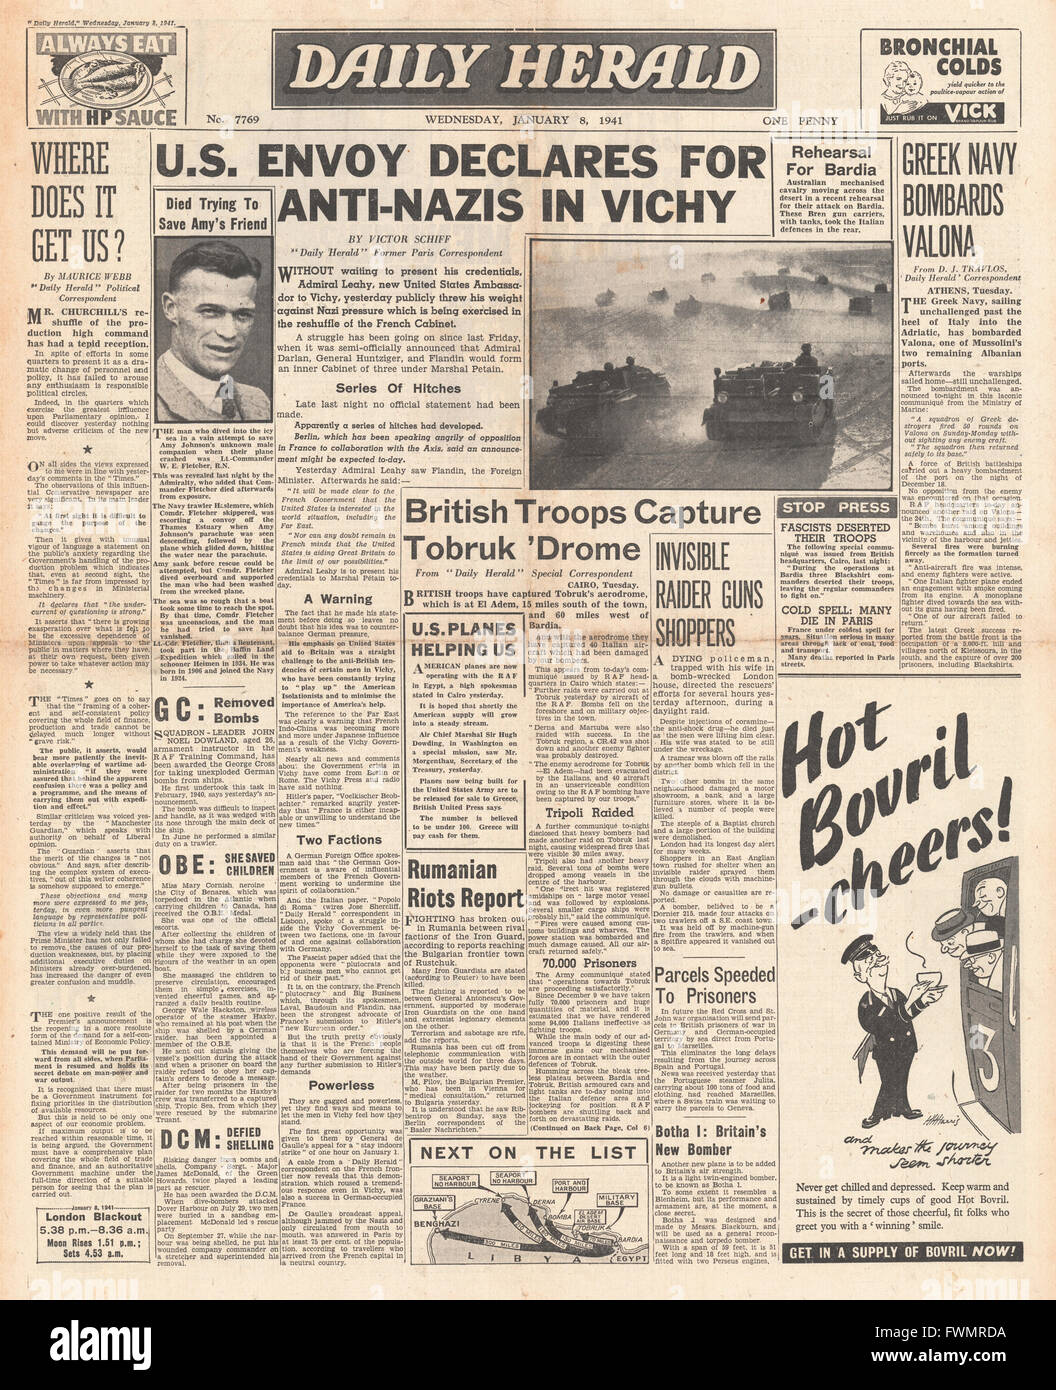 1941 front page Daily Herald US envoy to Vichy France Admiral Leahy and British Forces advance on Tobruk - Stock Image